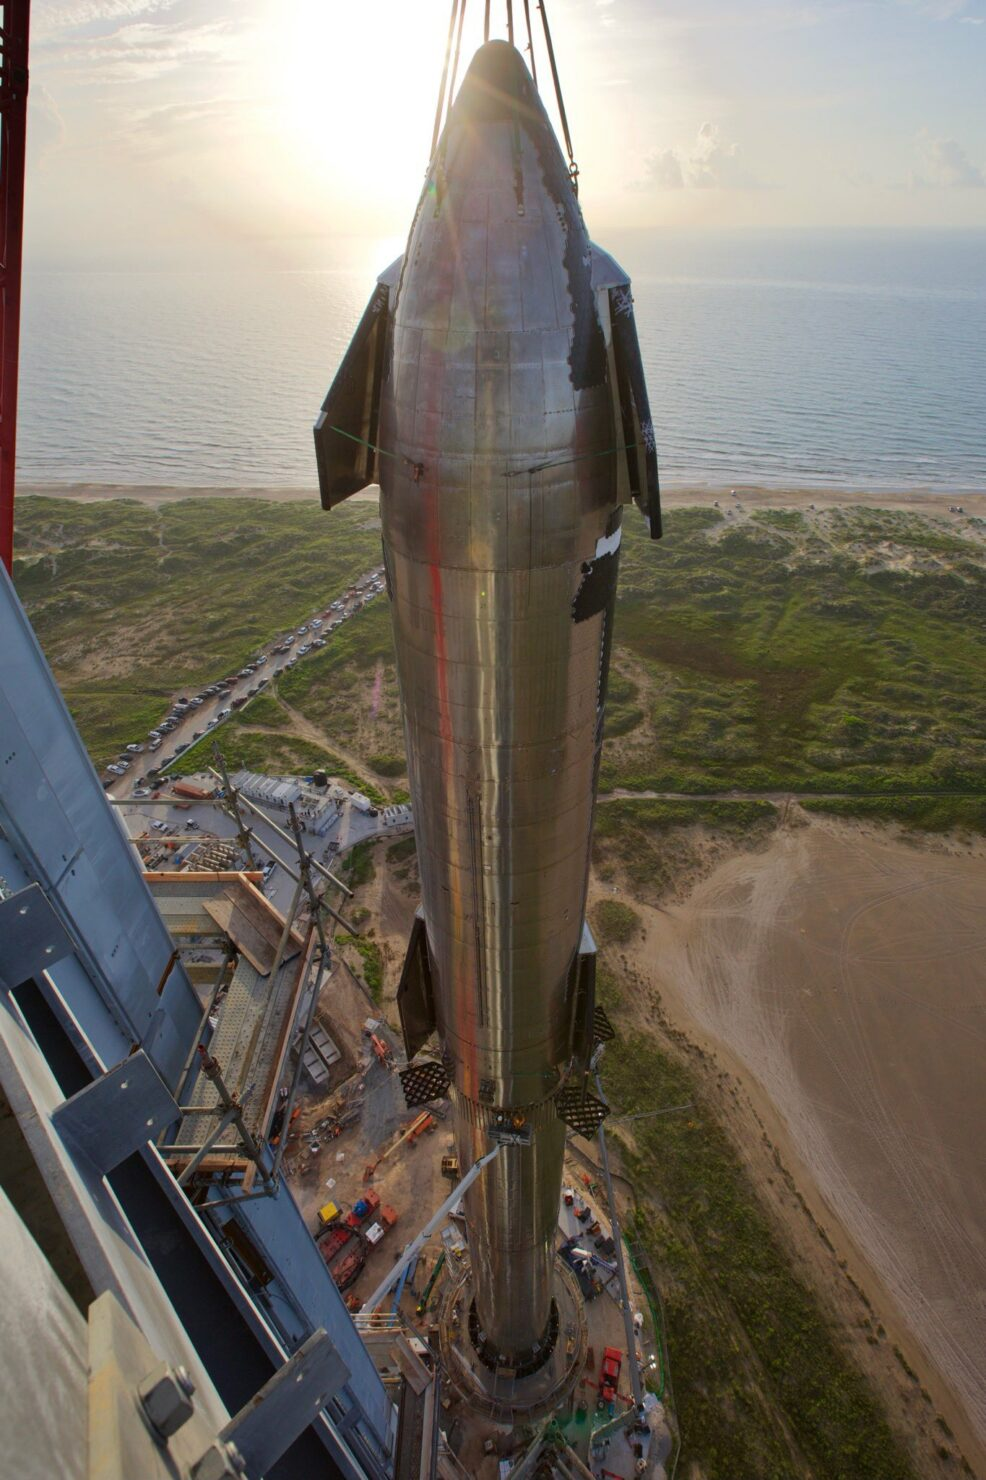 SpaceX Starship Super Heavy fully stacked